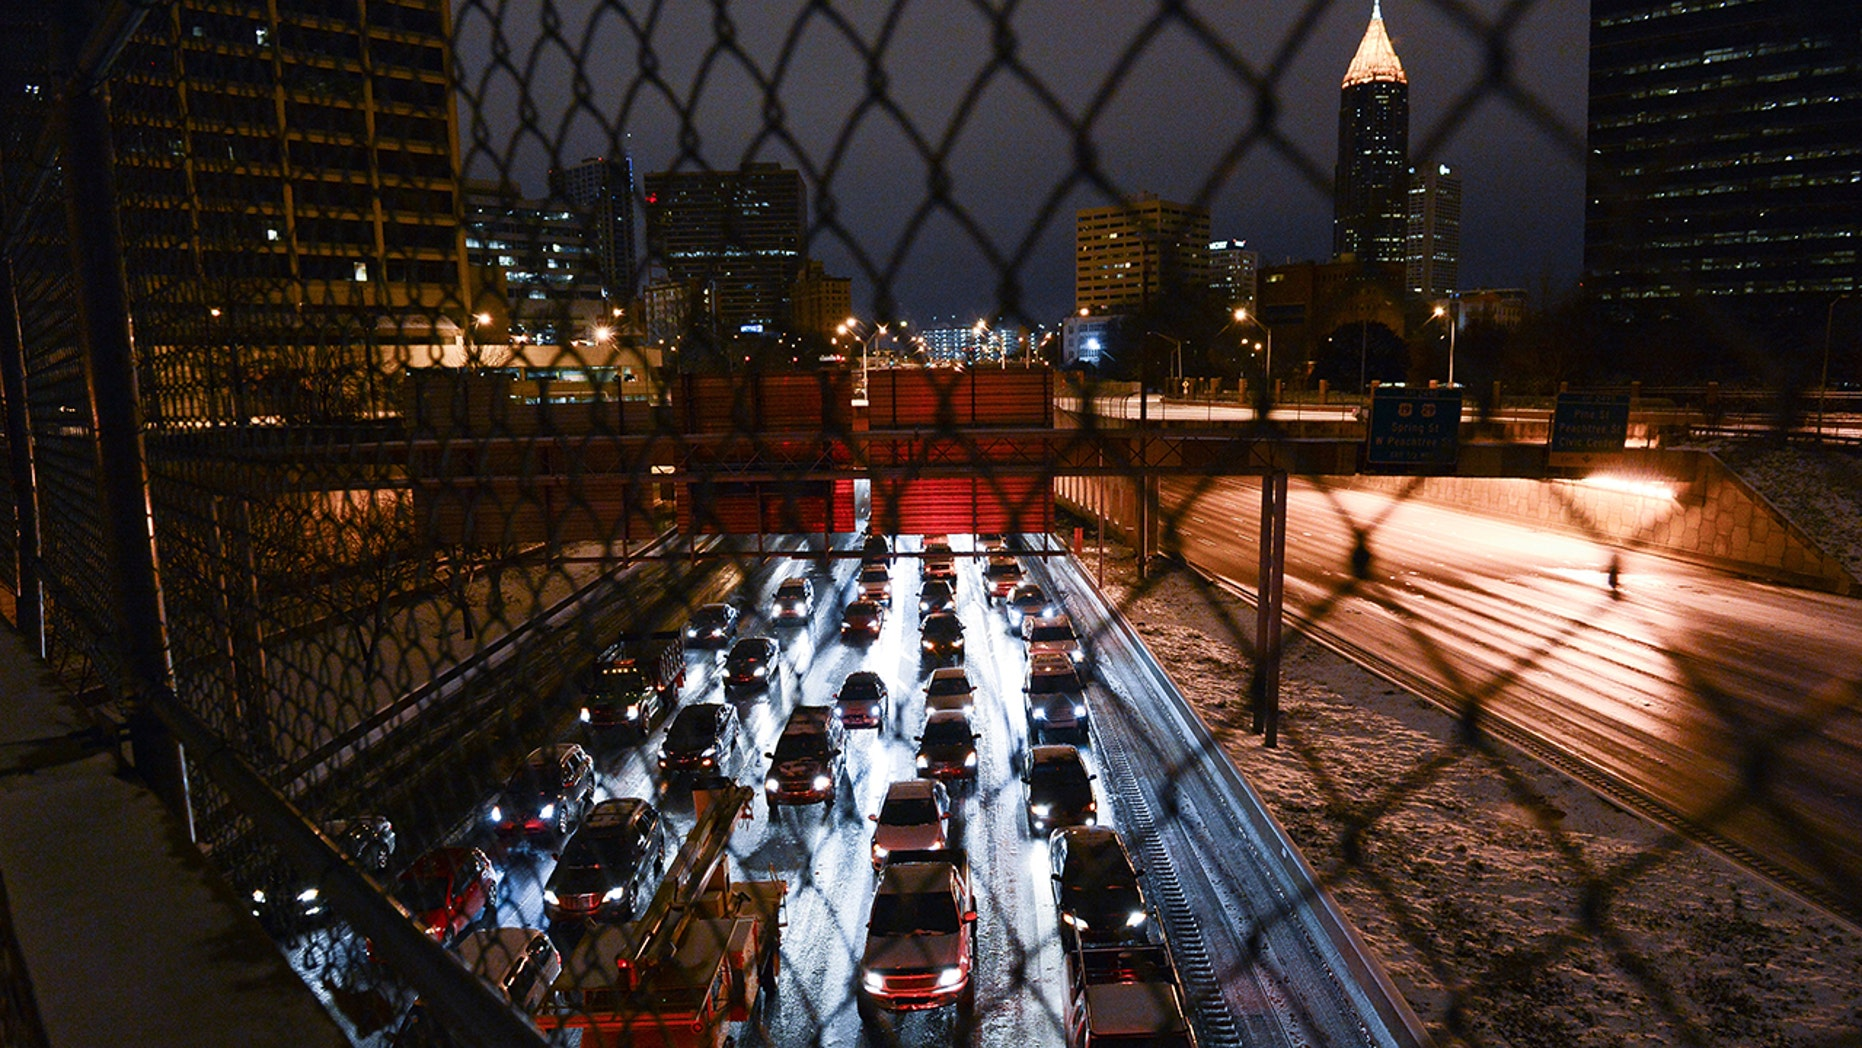 Record-breaking holiday traffic is expected this season, and